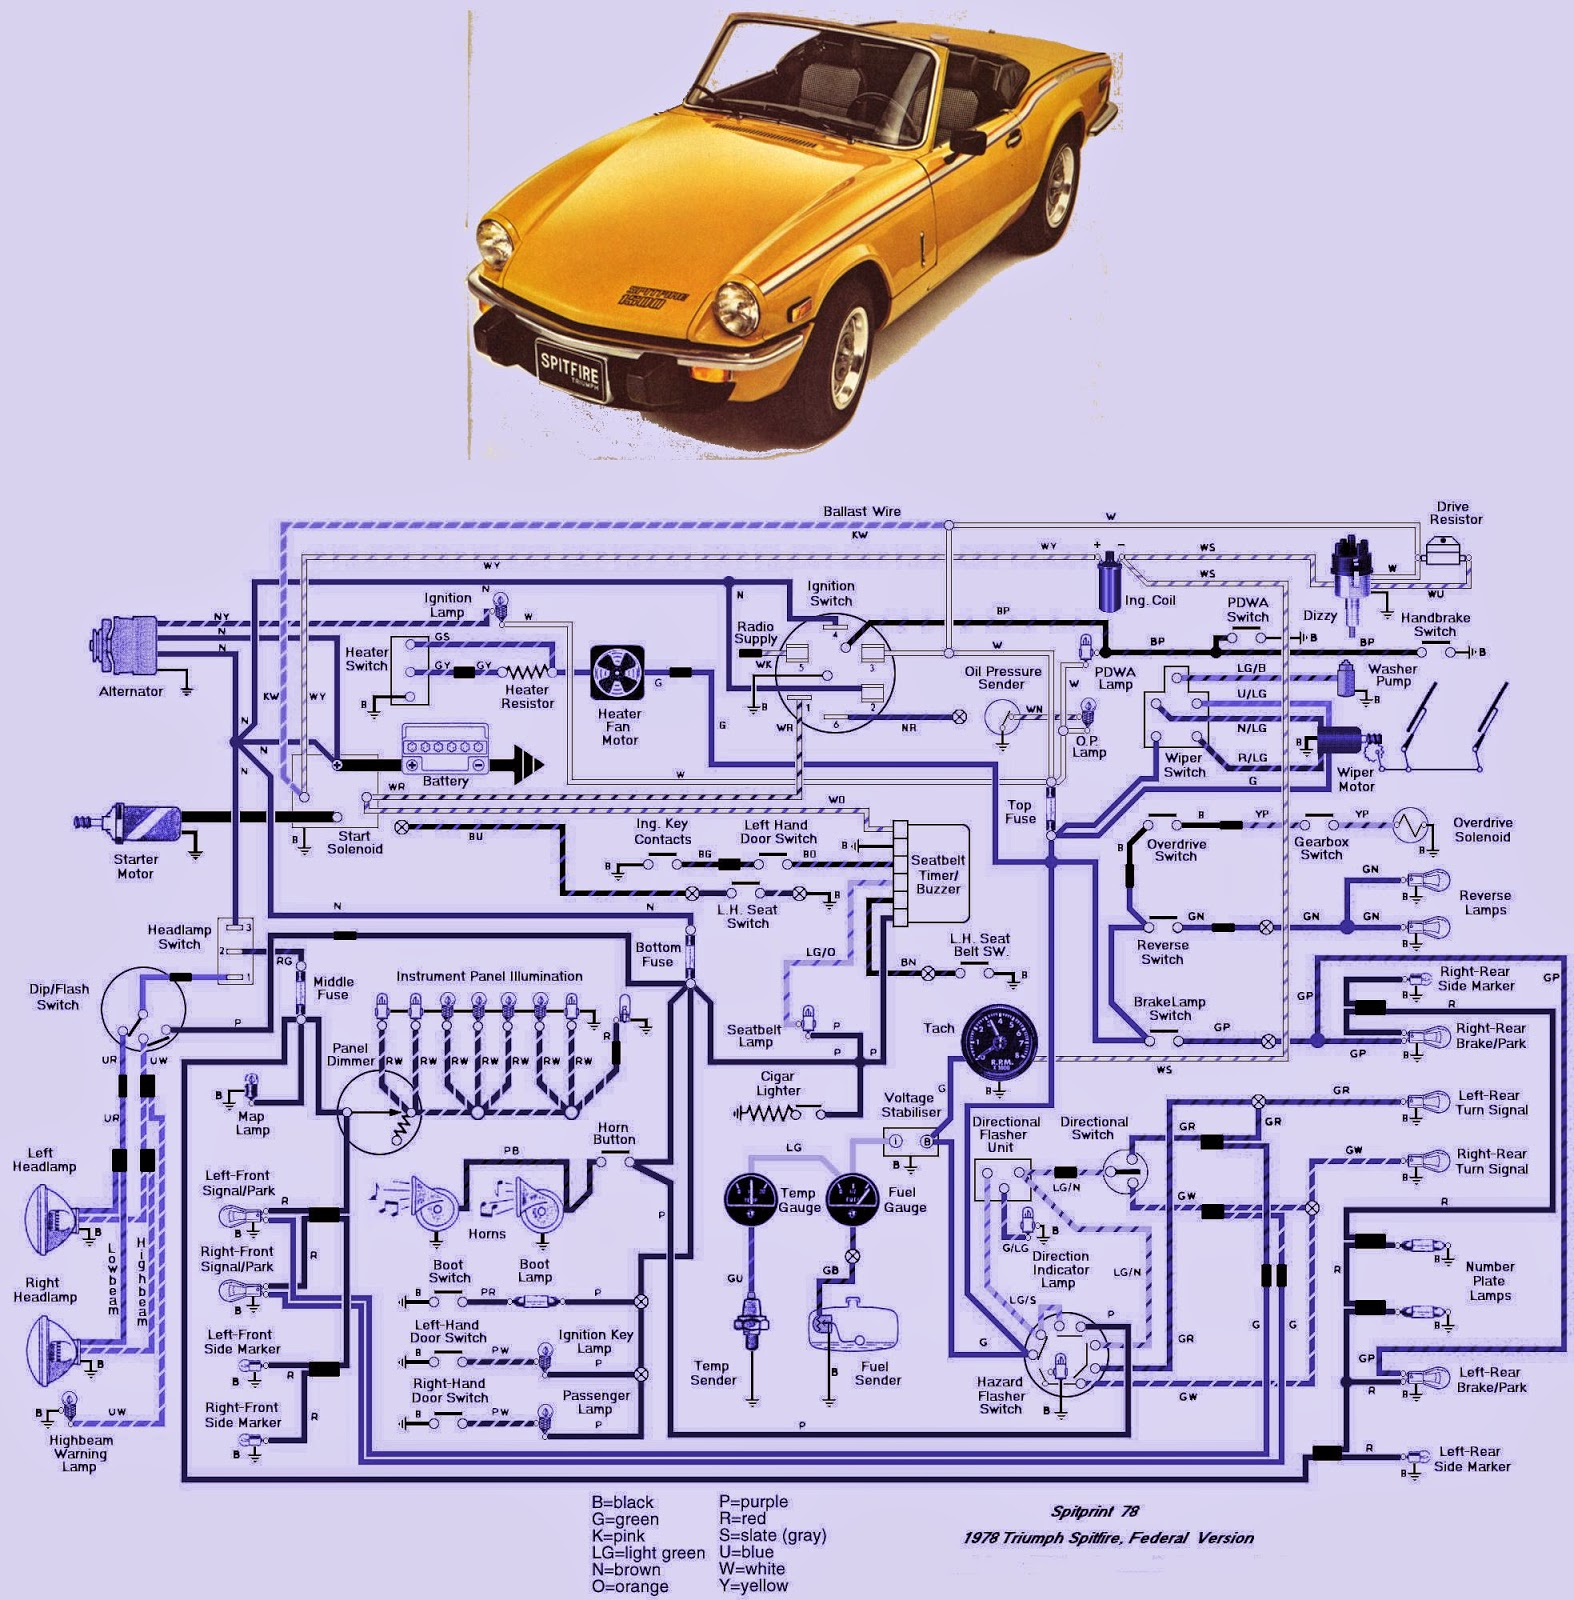 1978 Triumph Spitfire Wiring Trusted Diagram 67 Gt6 Auto Diagrams Radiator